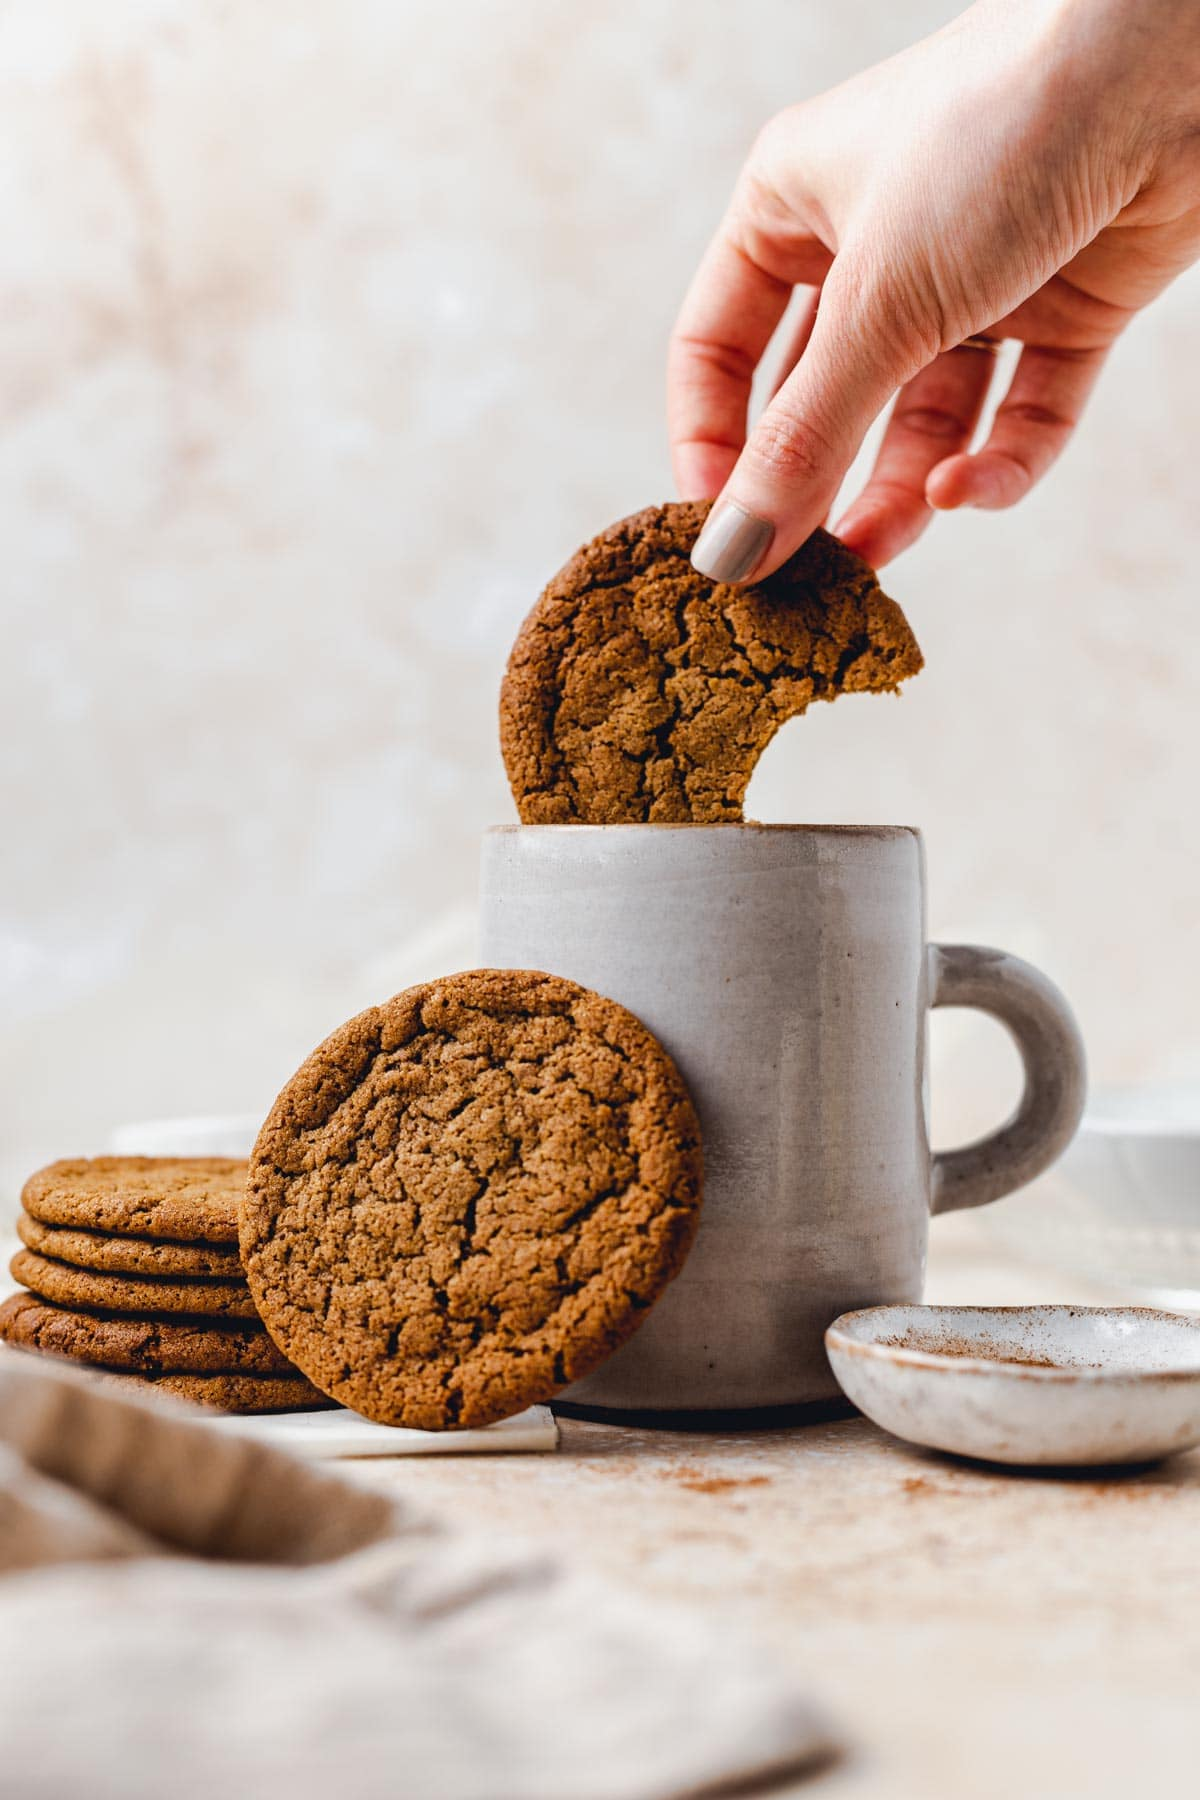 A hand dipping a ginger cookie in a mug of milk.